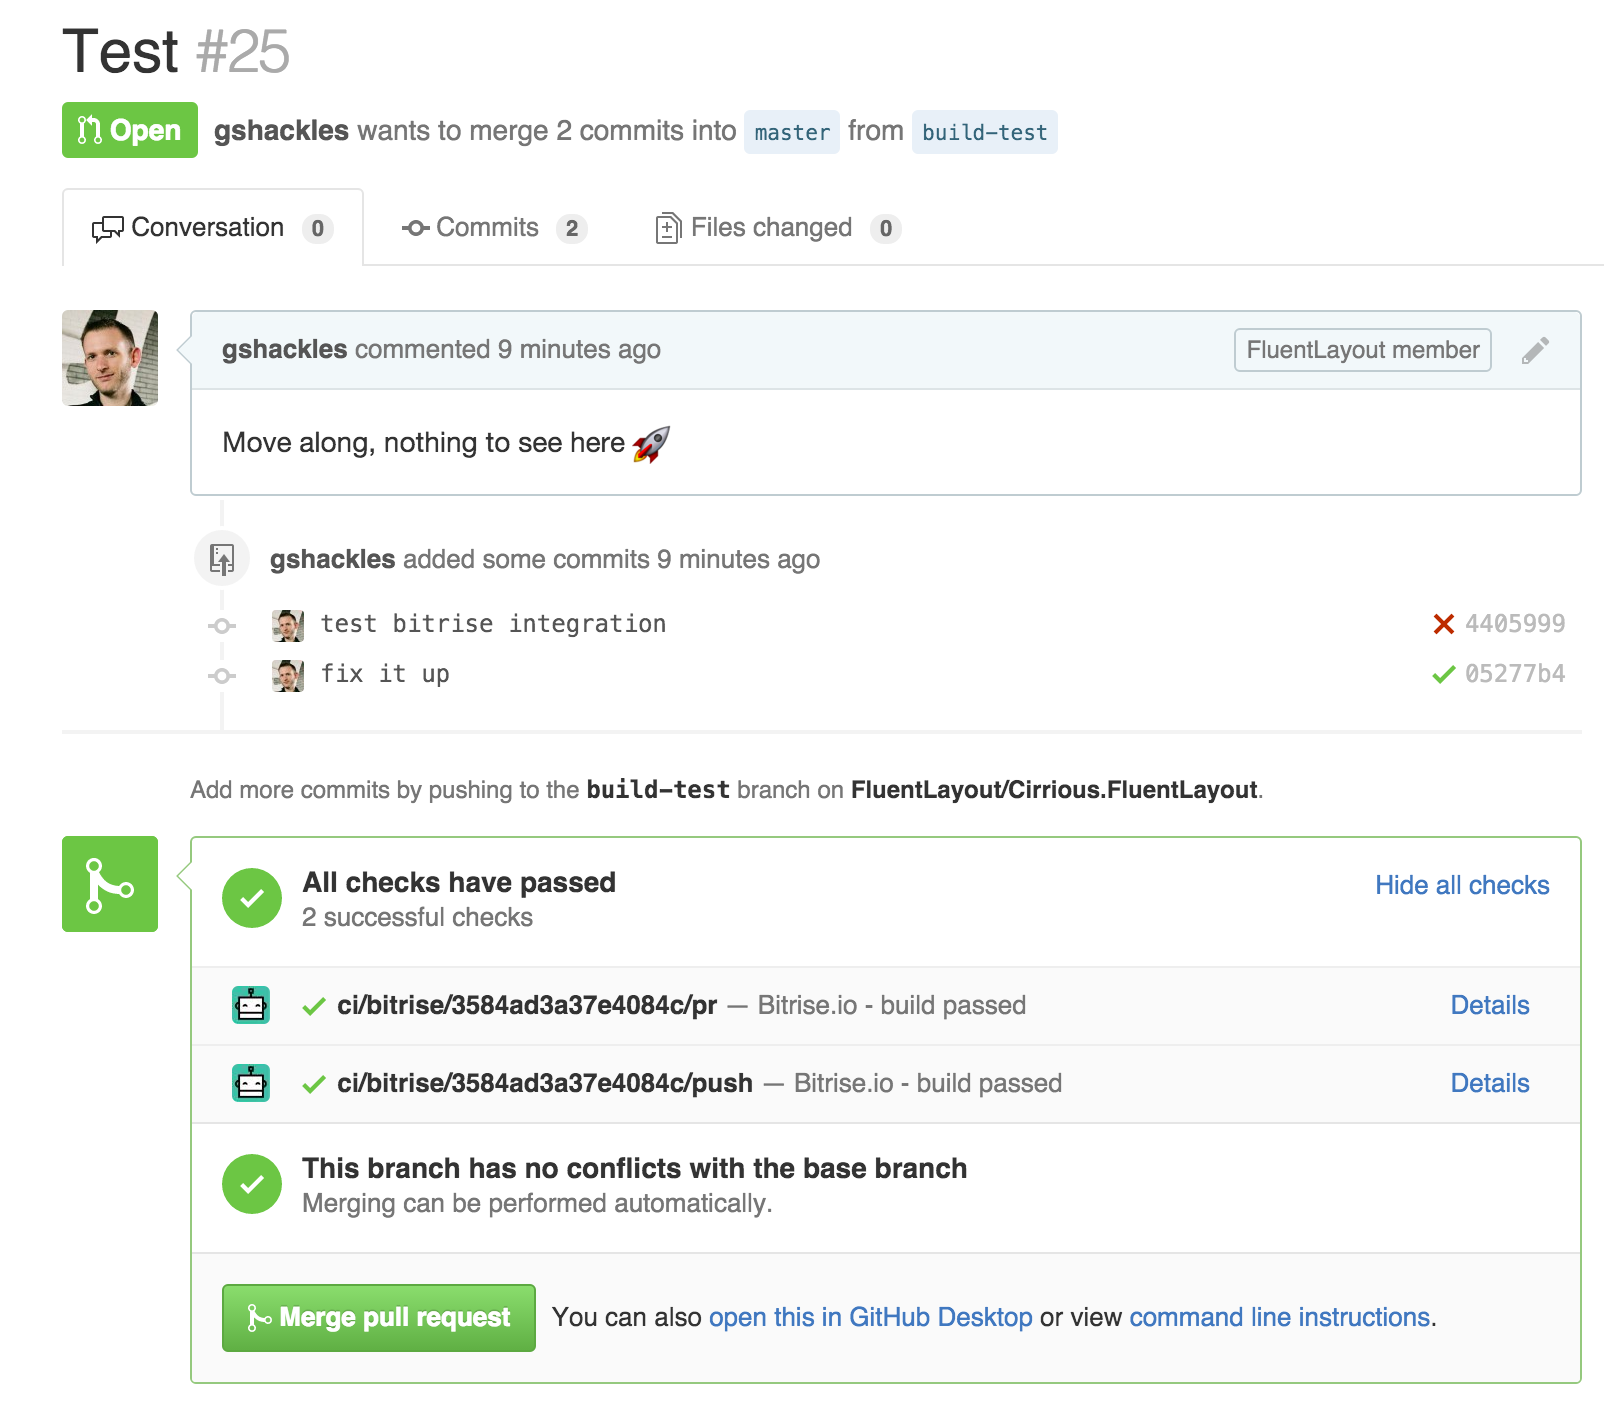 Build status in pull request